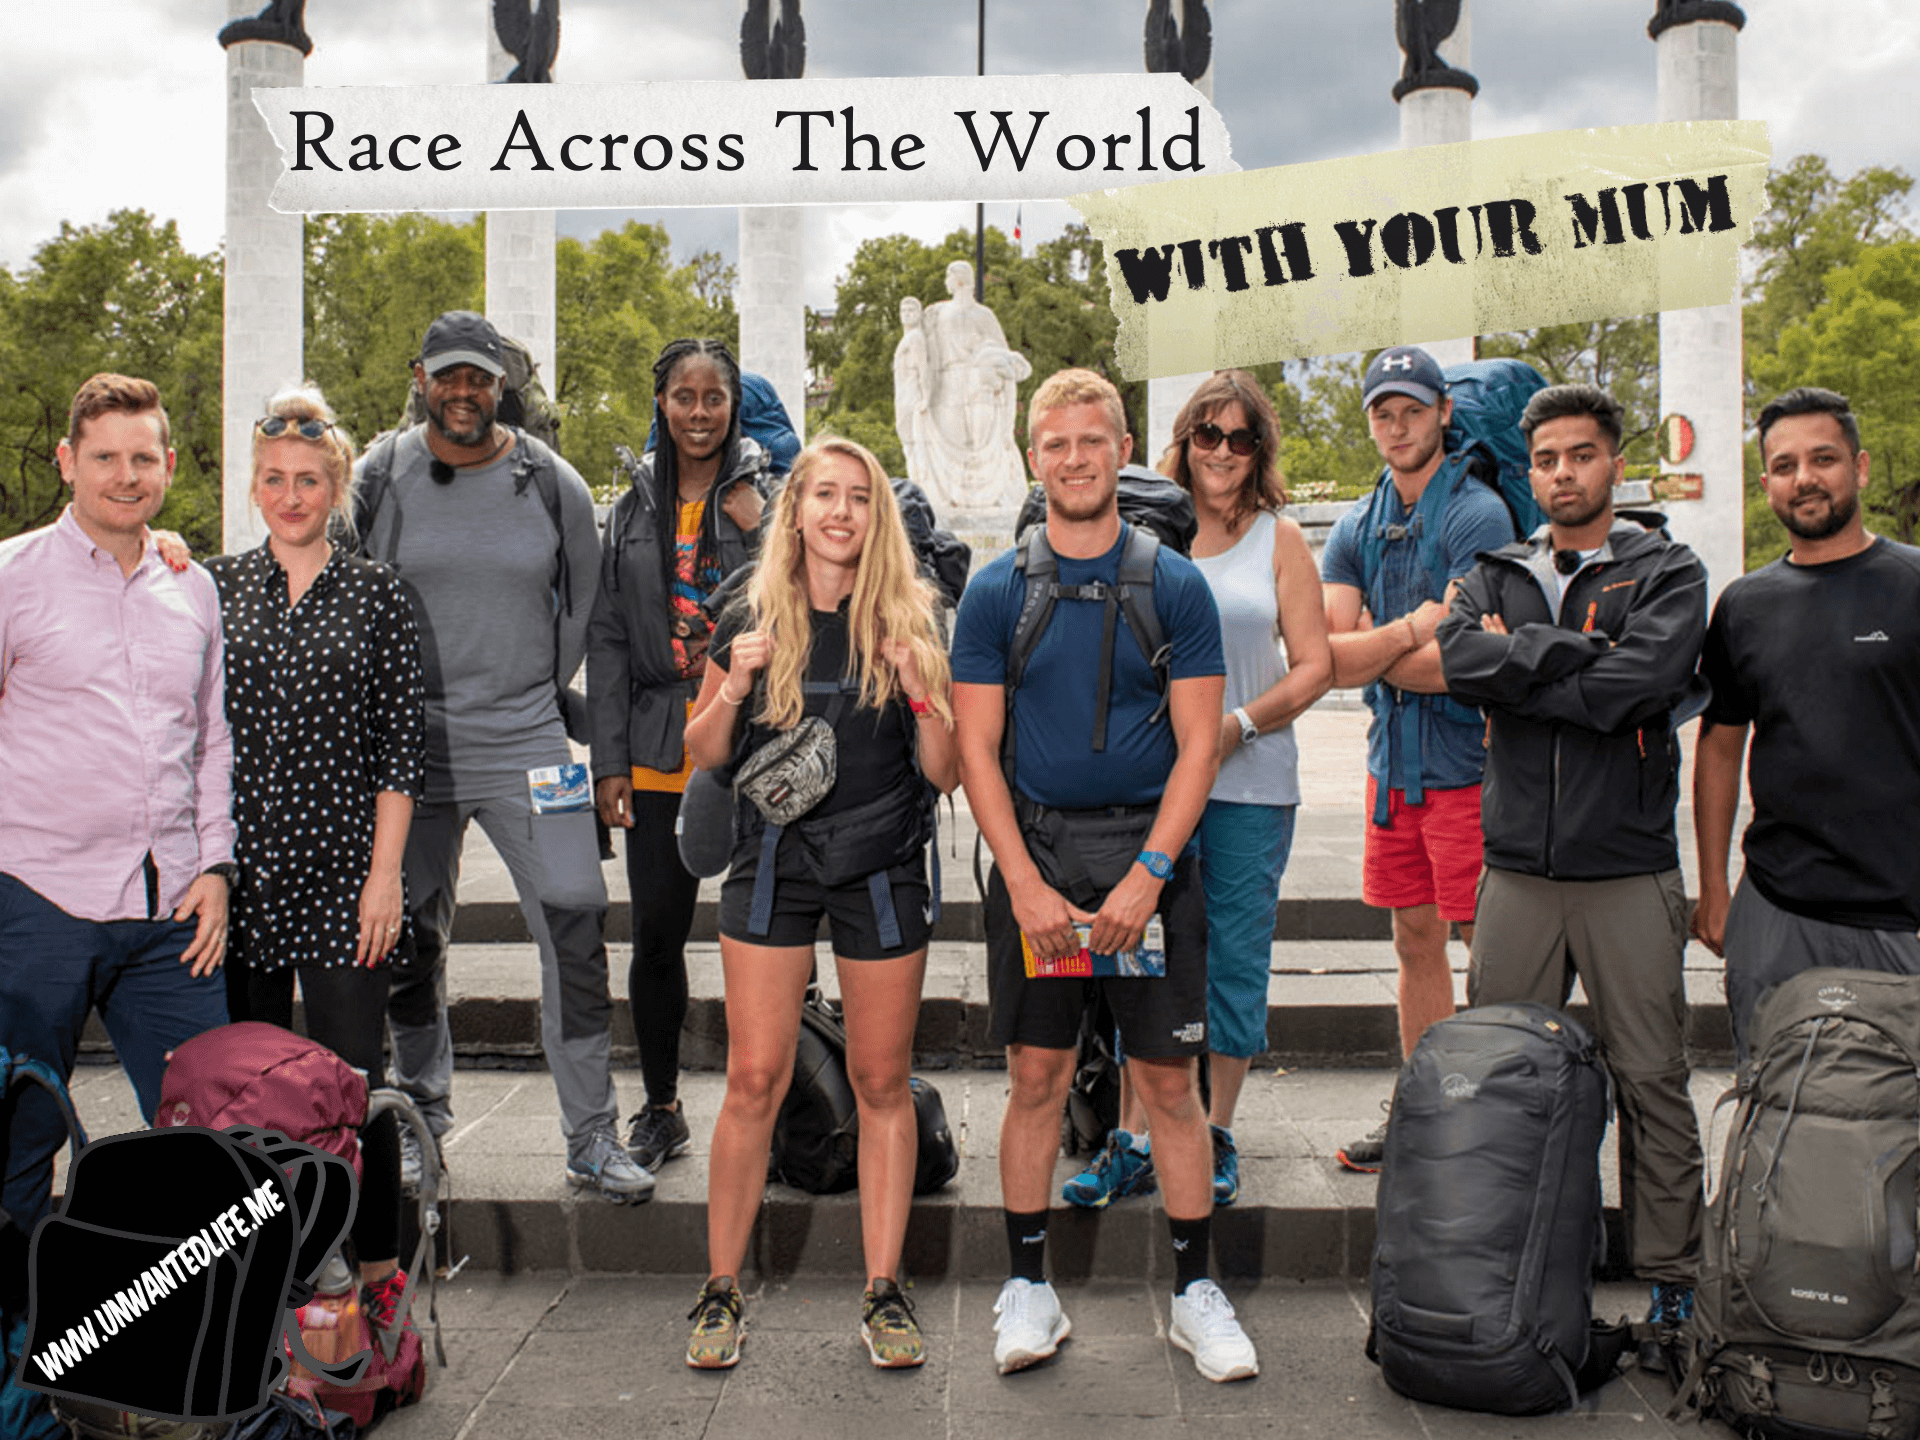 A photo of the contestants for the reality TV show Race Across The World to represent - Race Across The World, With Your Mum